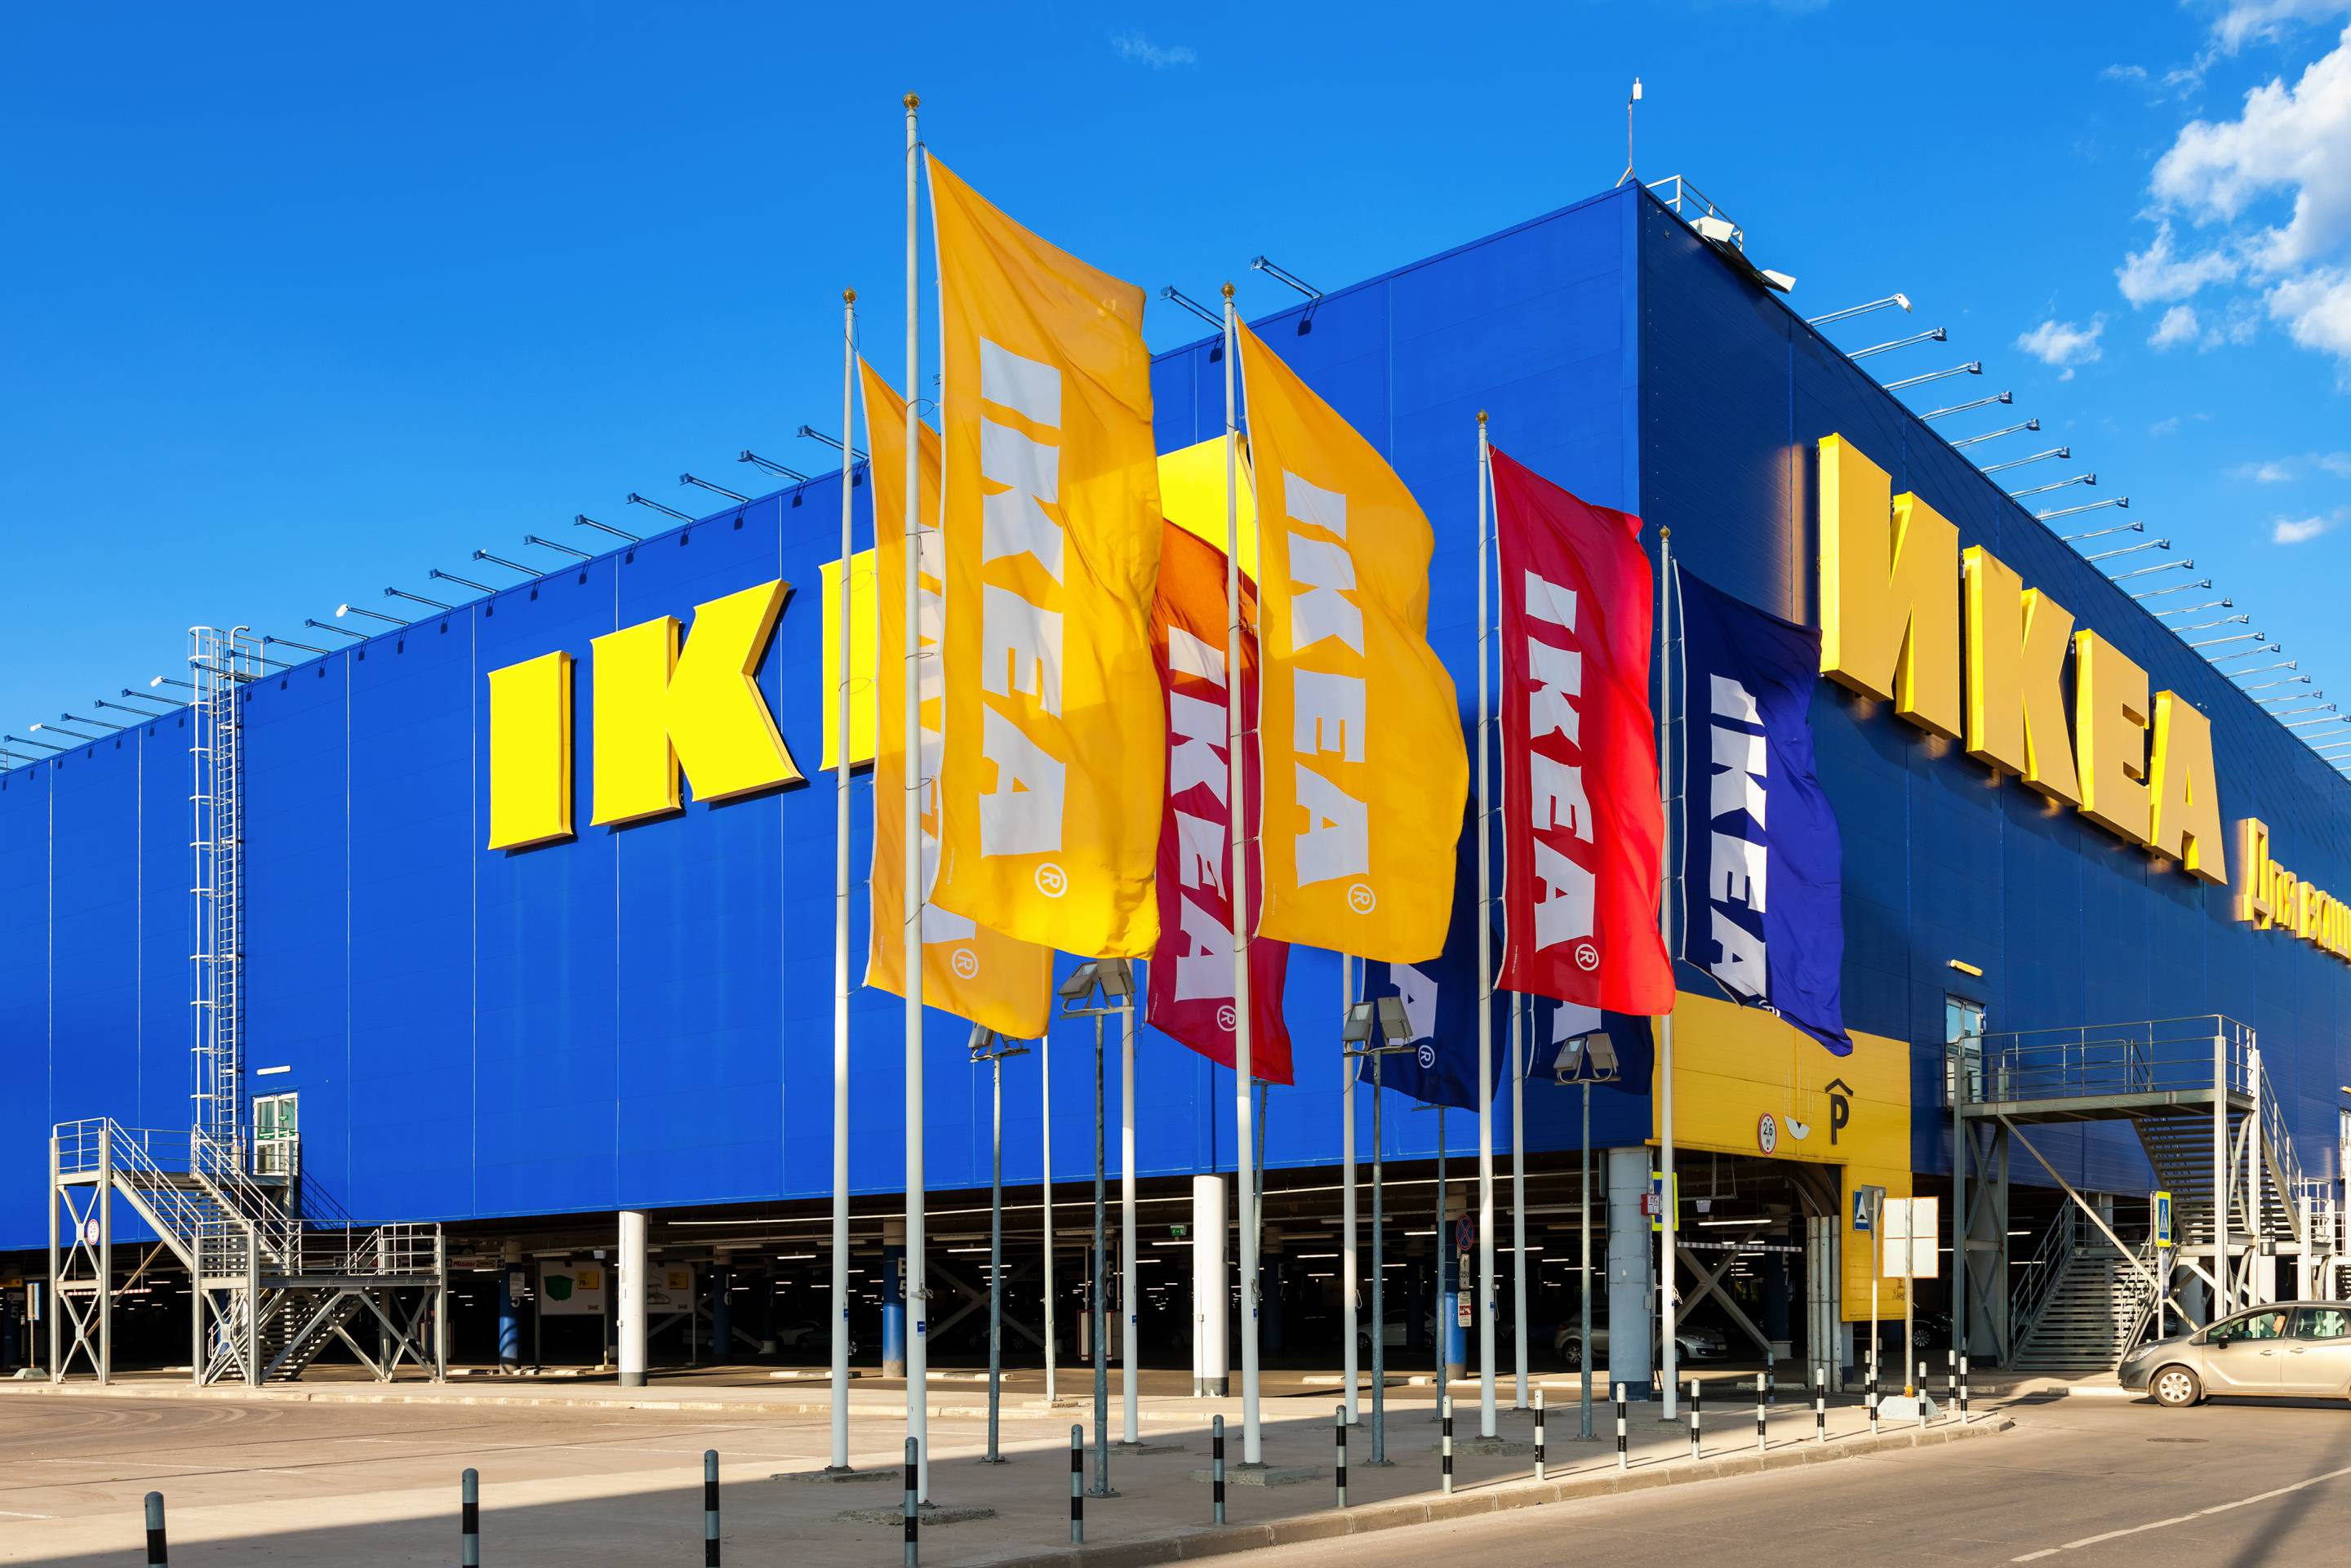 ikea-third-party-retail-websites-e1513609708935